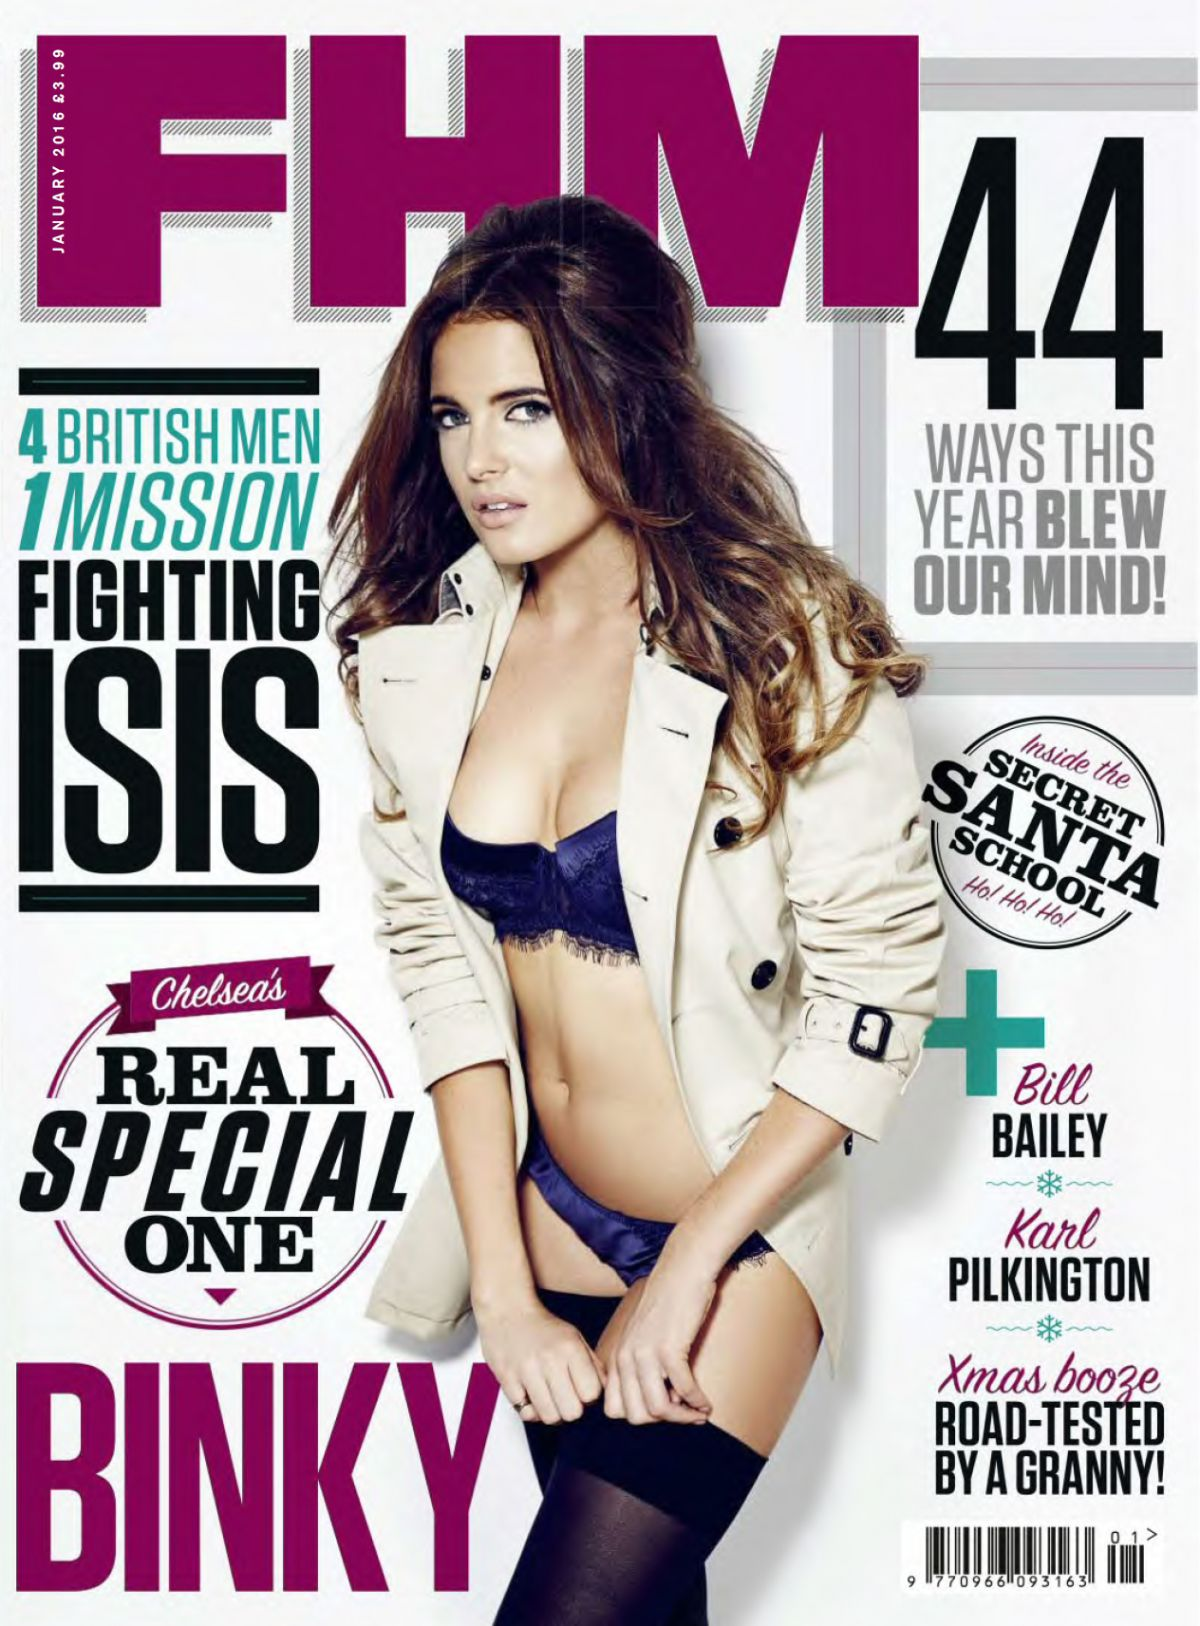 BINKY FELSTEAD in FHM Magazine, UK January 2016 Issue